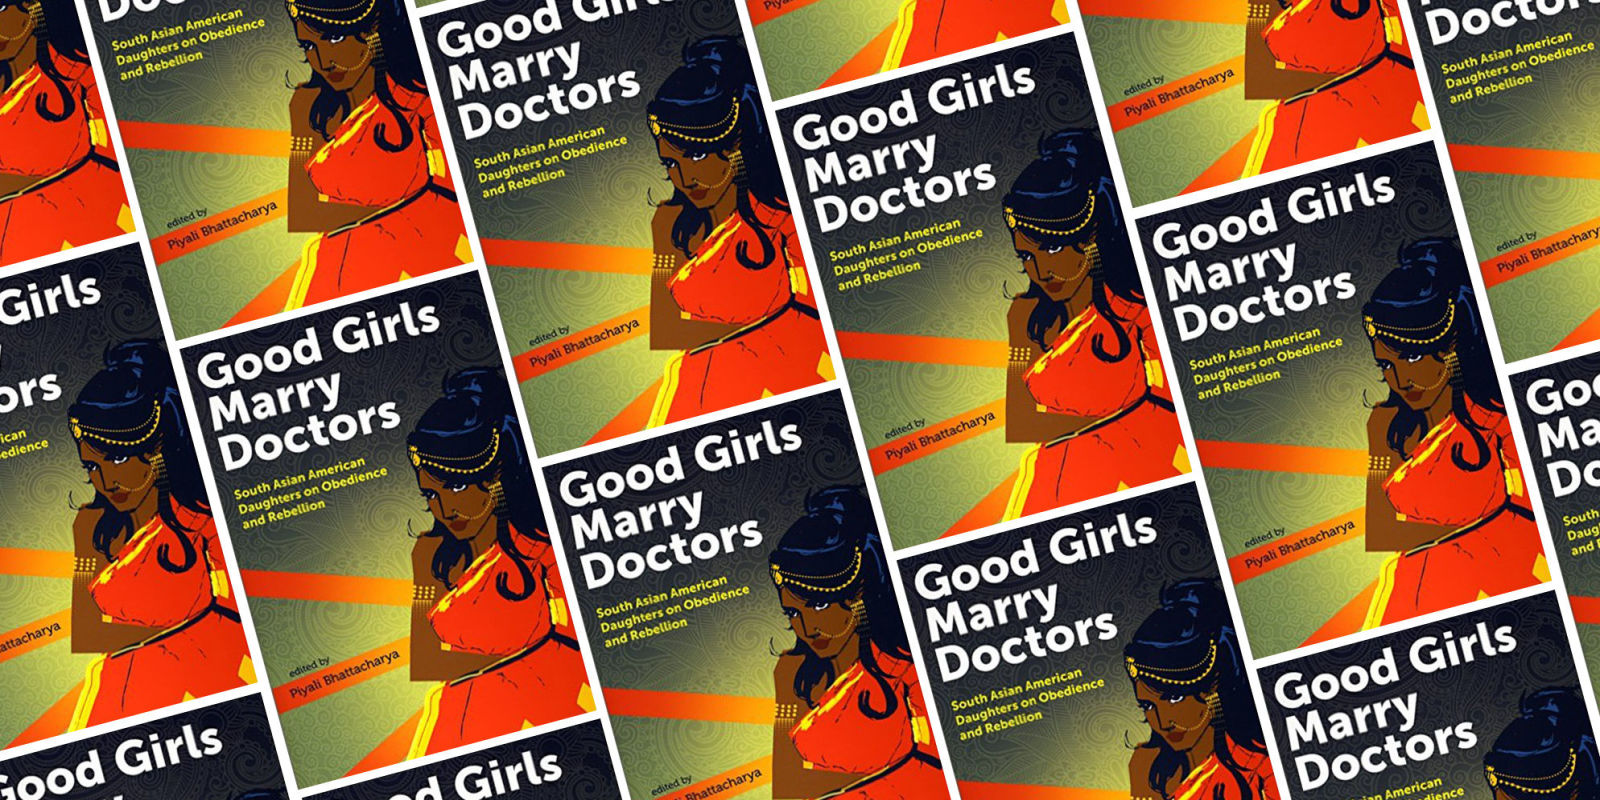 A colorful patchwork of Good Girls book title